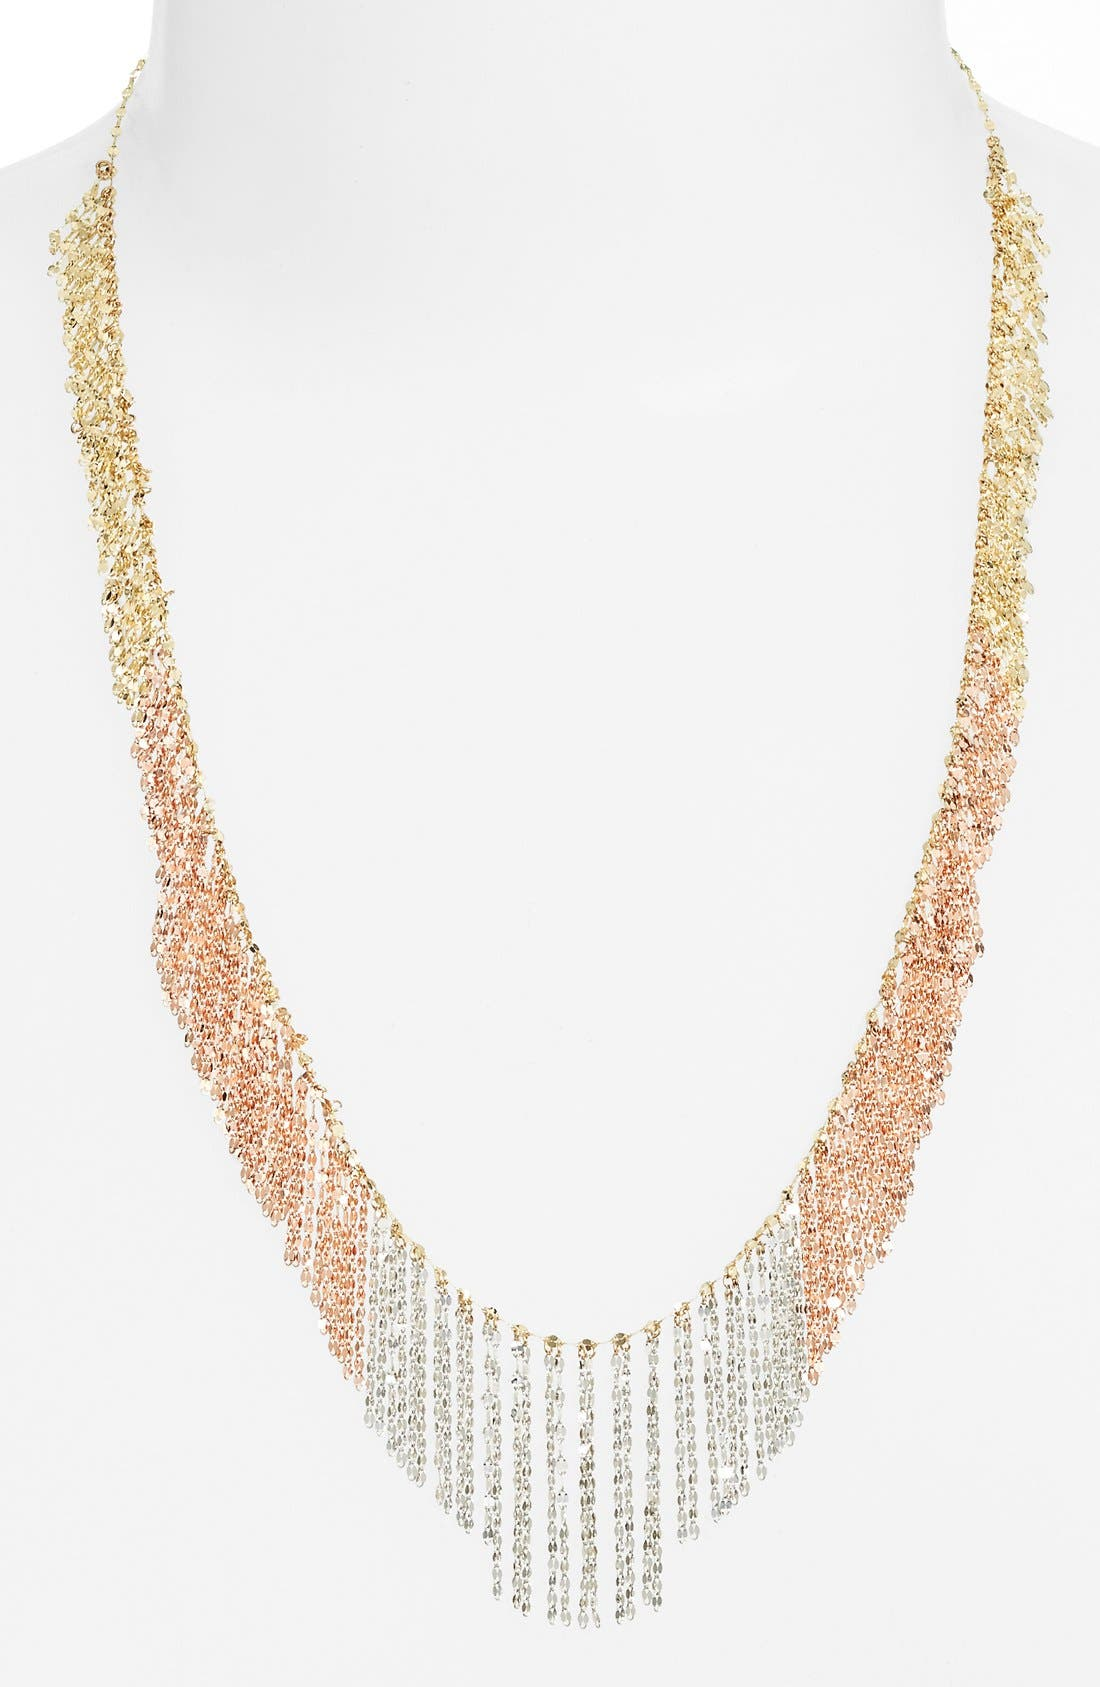 Lana Jewelry 'Nude' Tri-Color Fringe Necklace